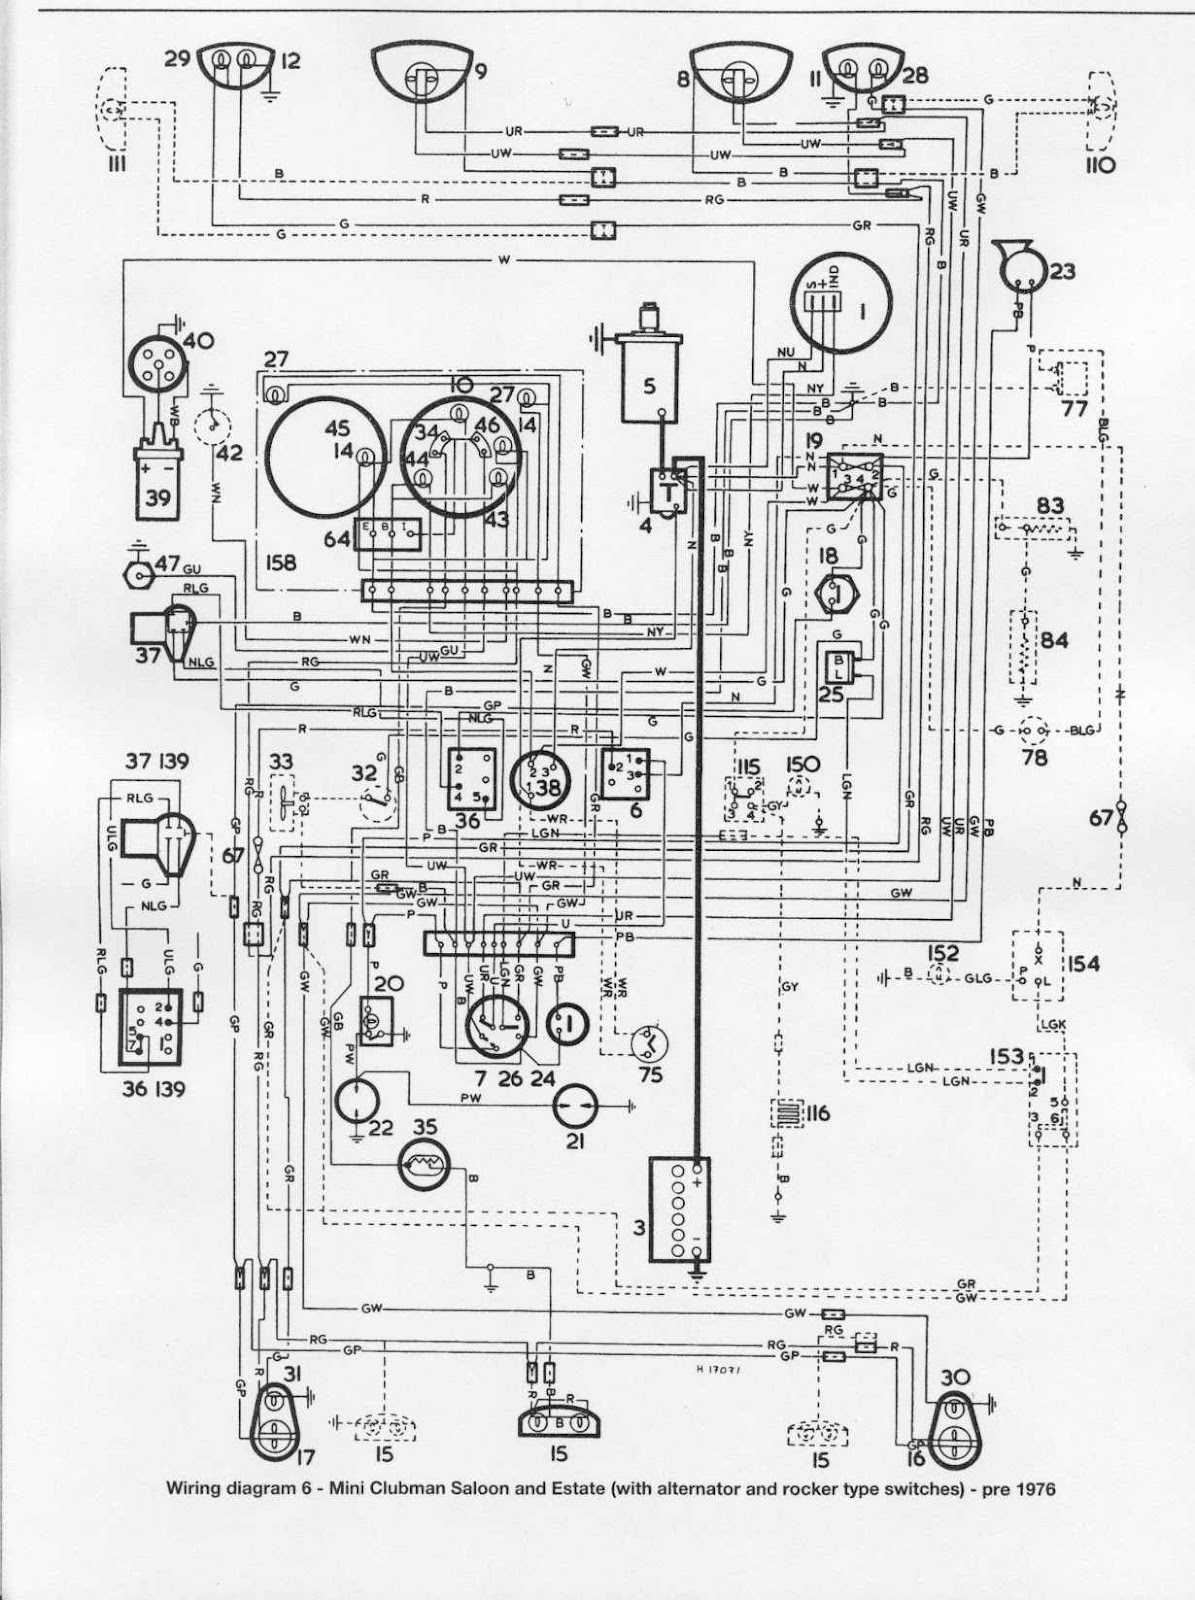 vista key wiring diagram mini key wiring diagram mini clubman saloon and estate 1976 electrical wiring ...